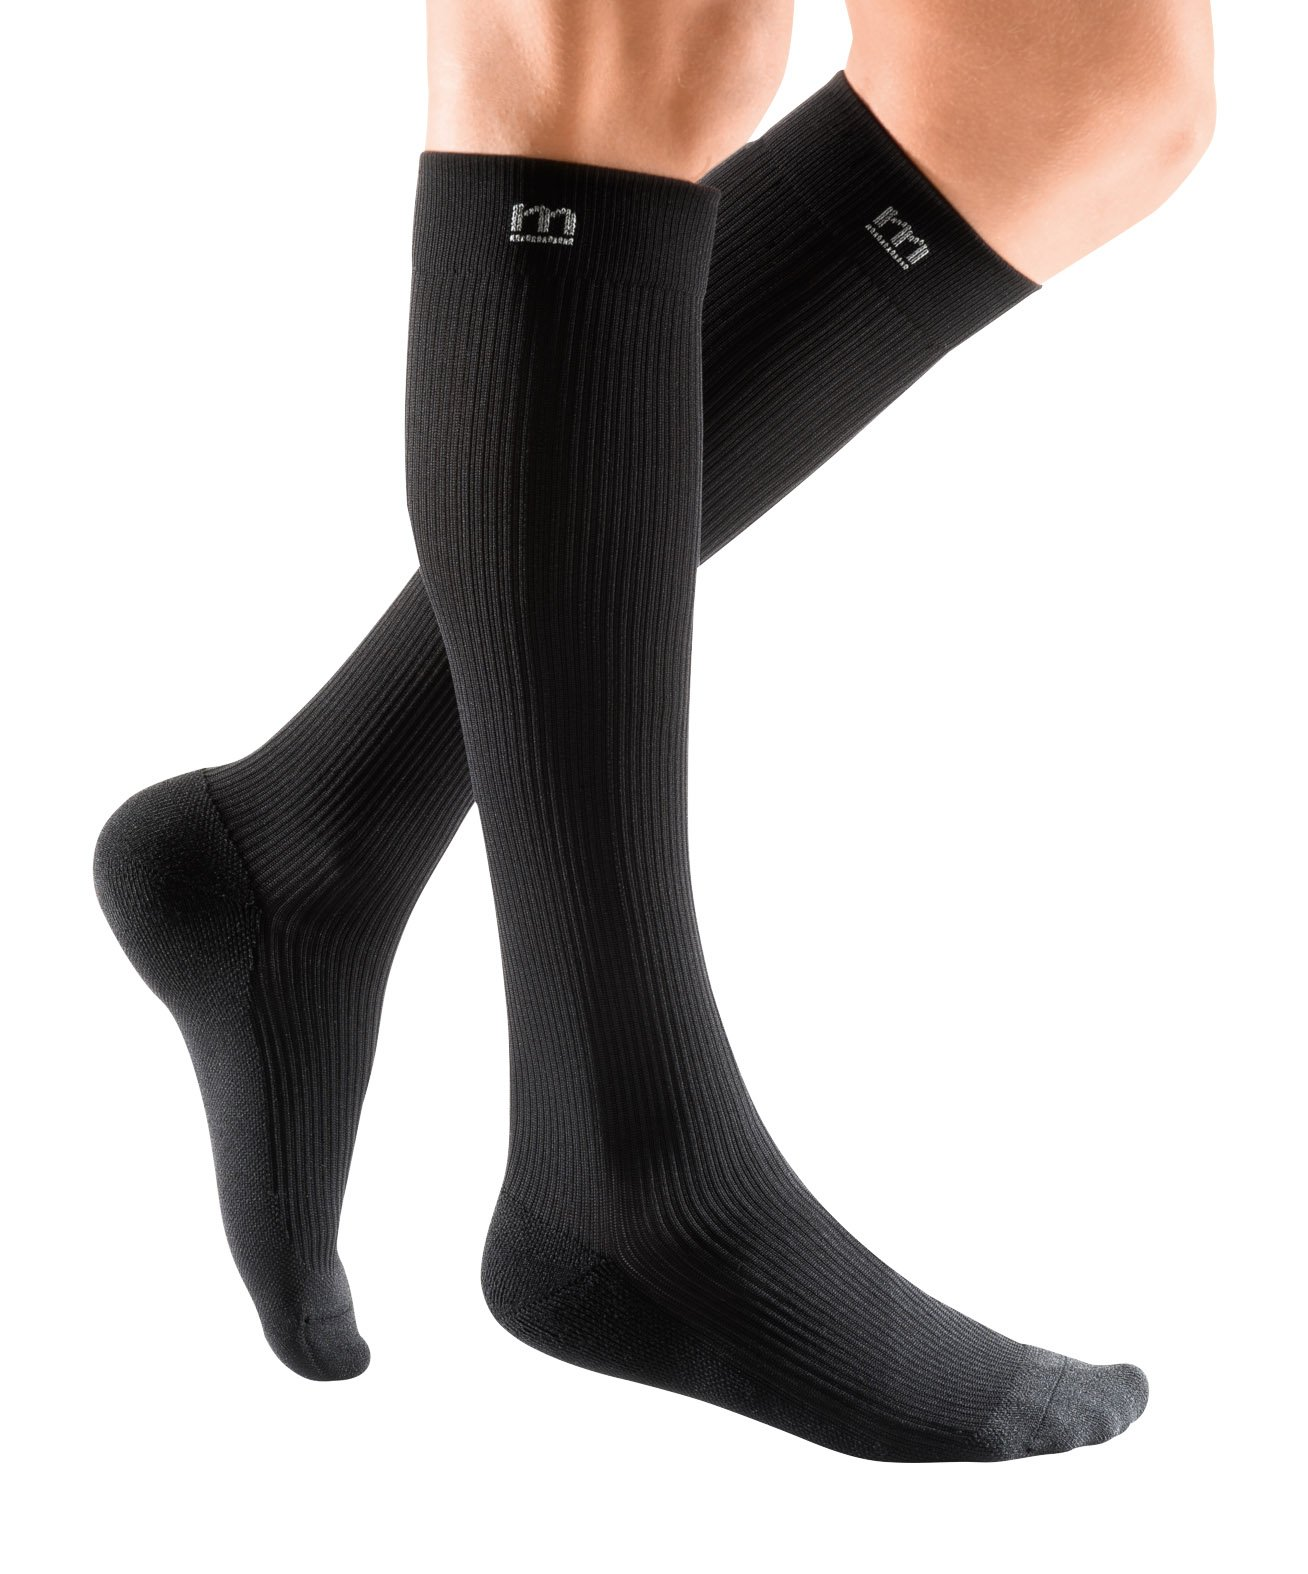 mediven Active, 20-30 mmHg, Calf High Compression Stockings, Closed Toe by mediven